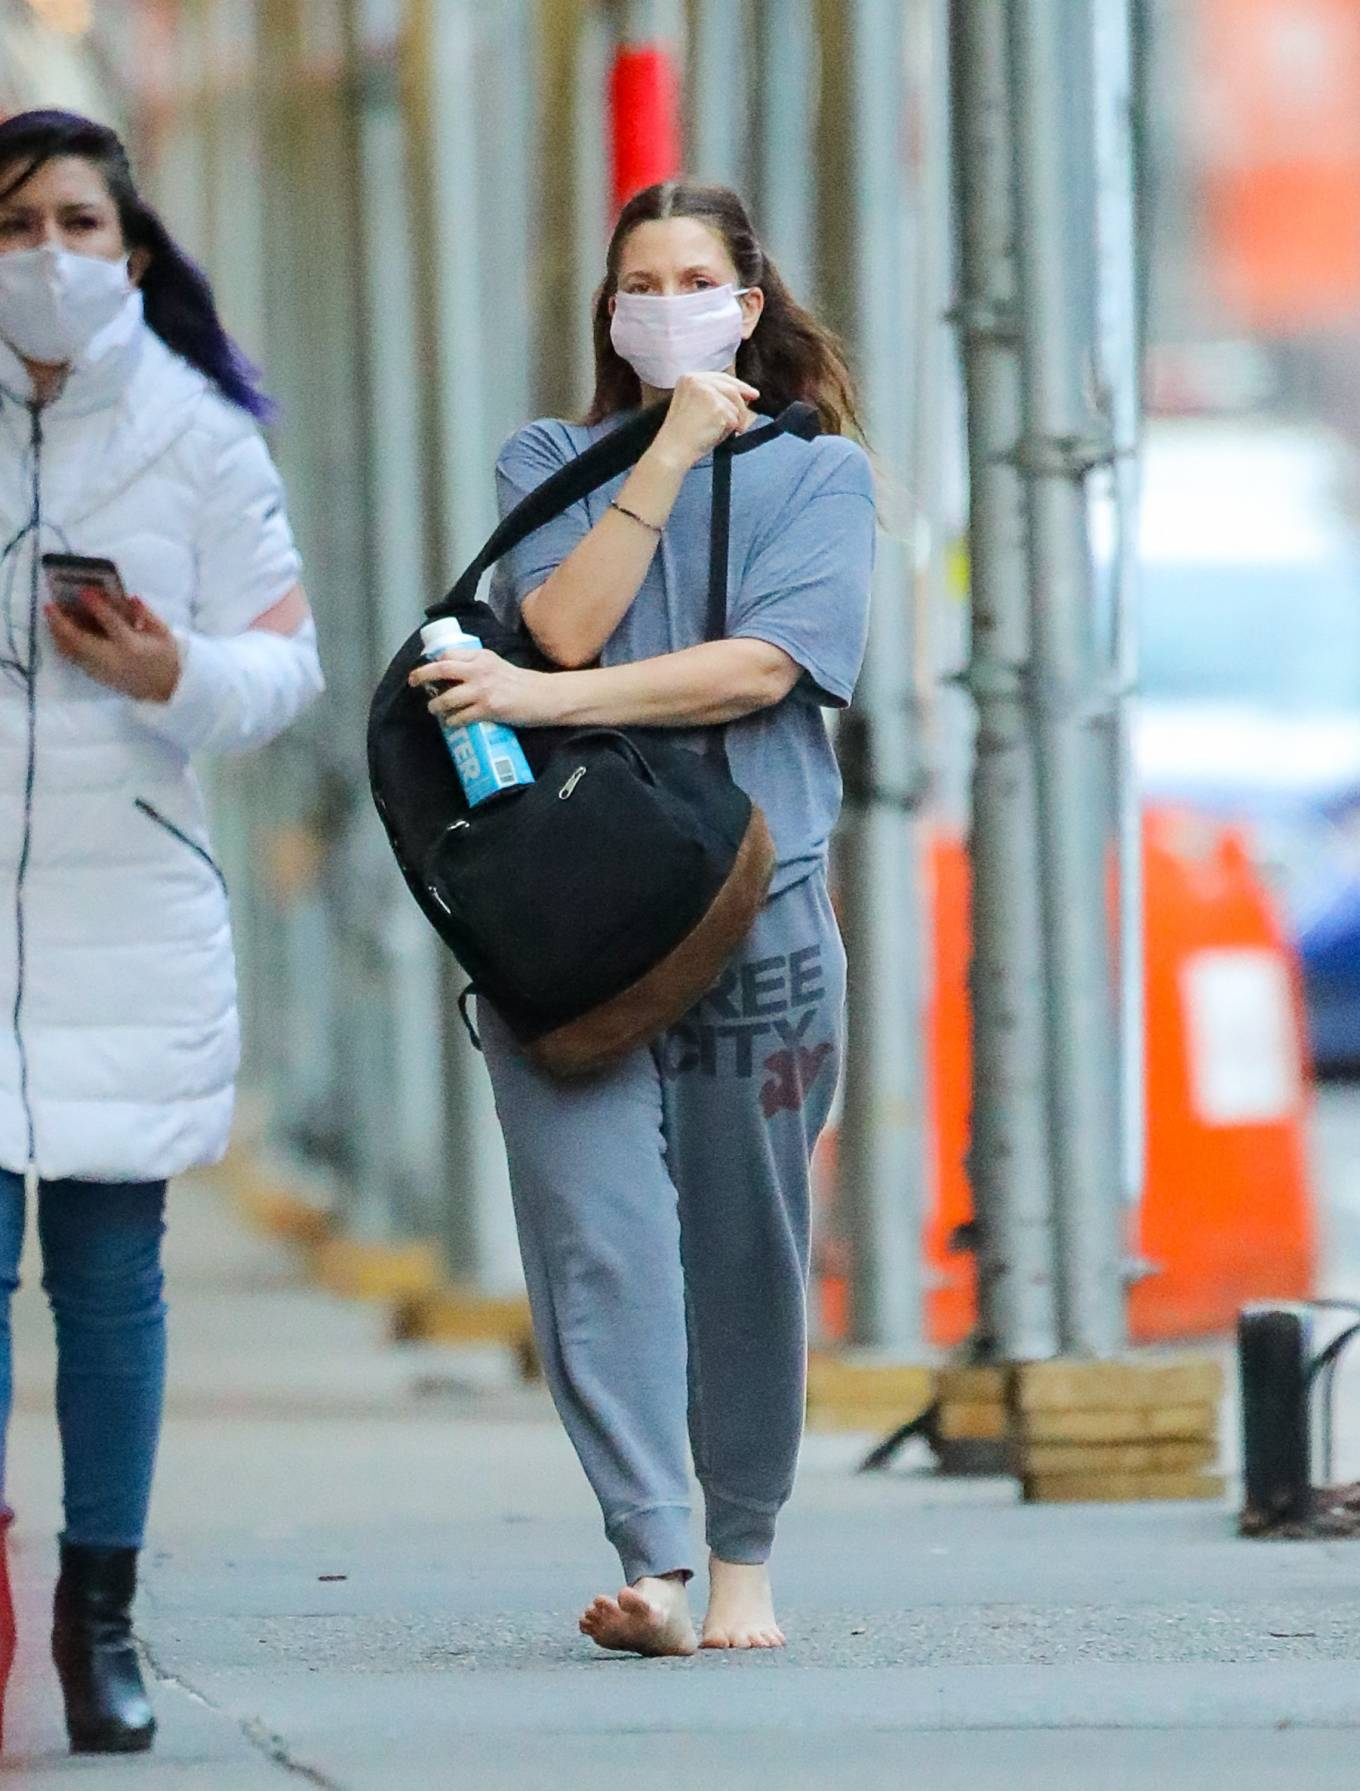 Drew Barrymore 2021 : Drew Barrymore – Goes barefoot while out and about in New York-14